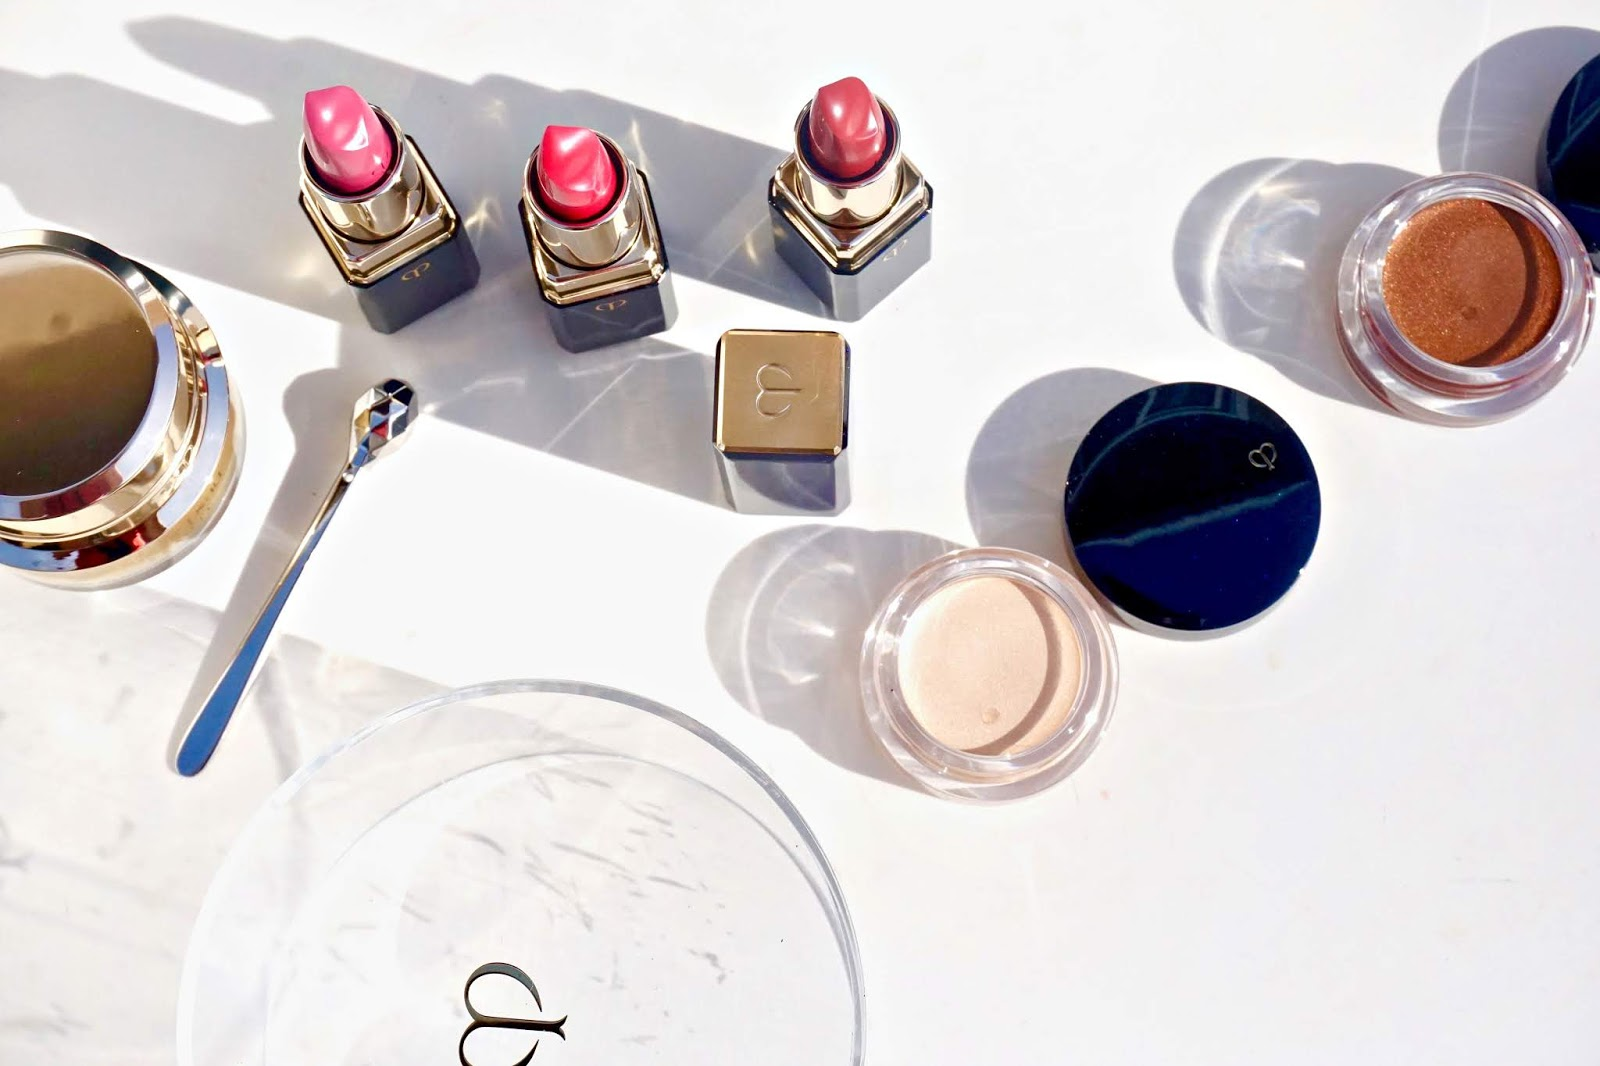 cle de peau spring summer 2019 collection swatches